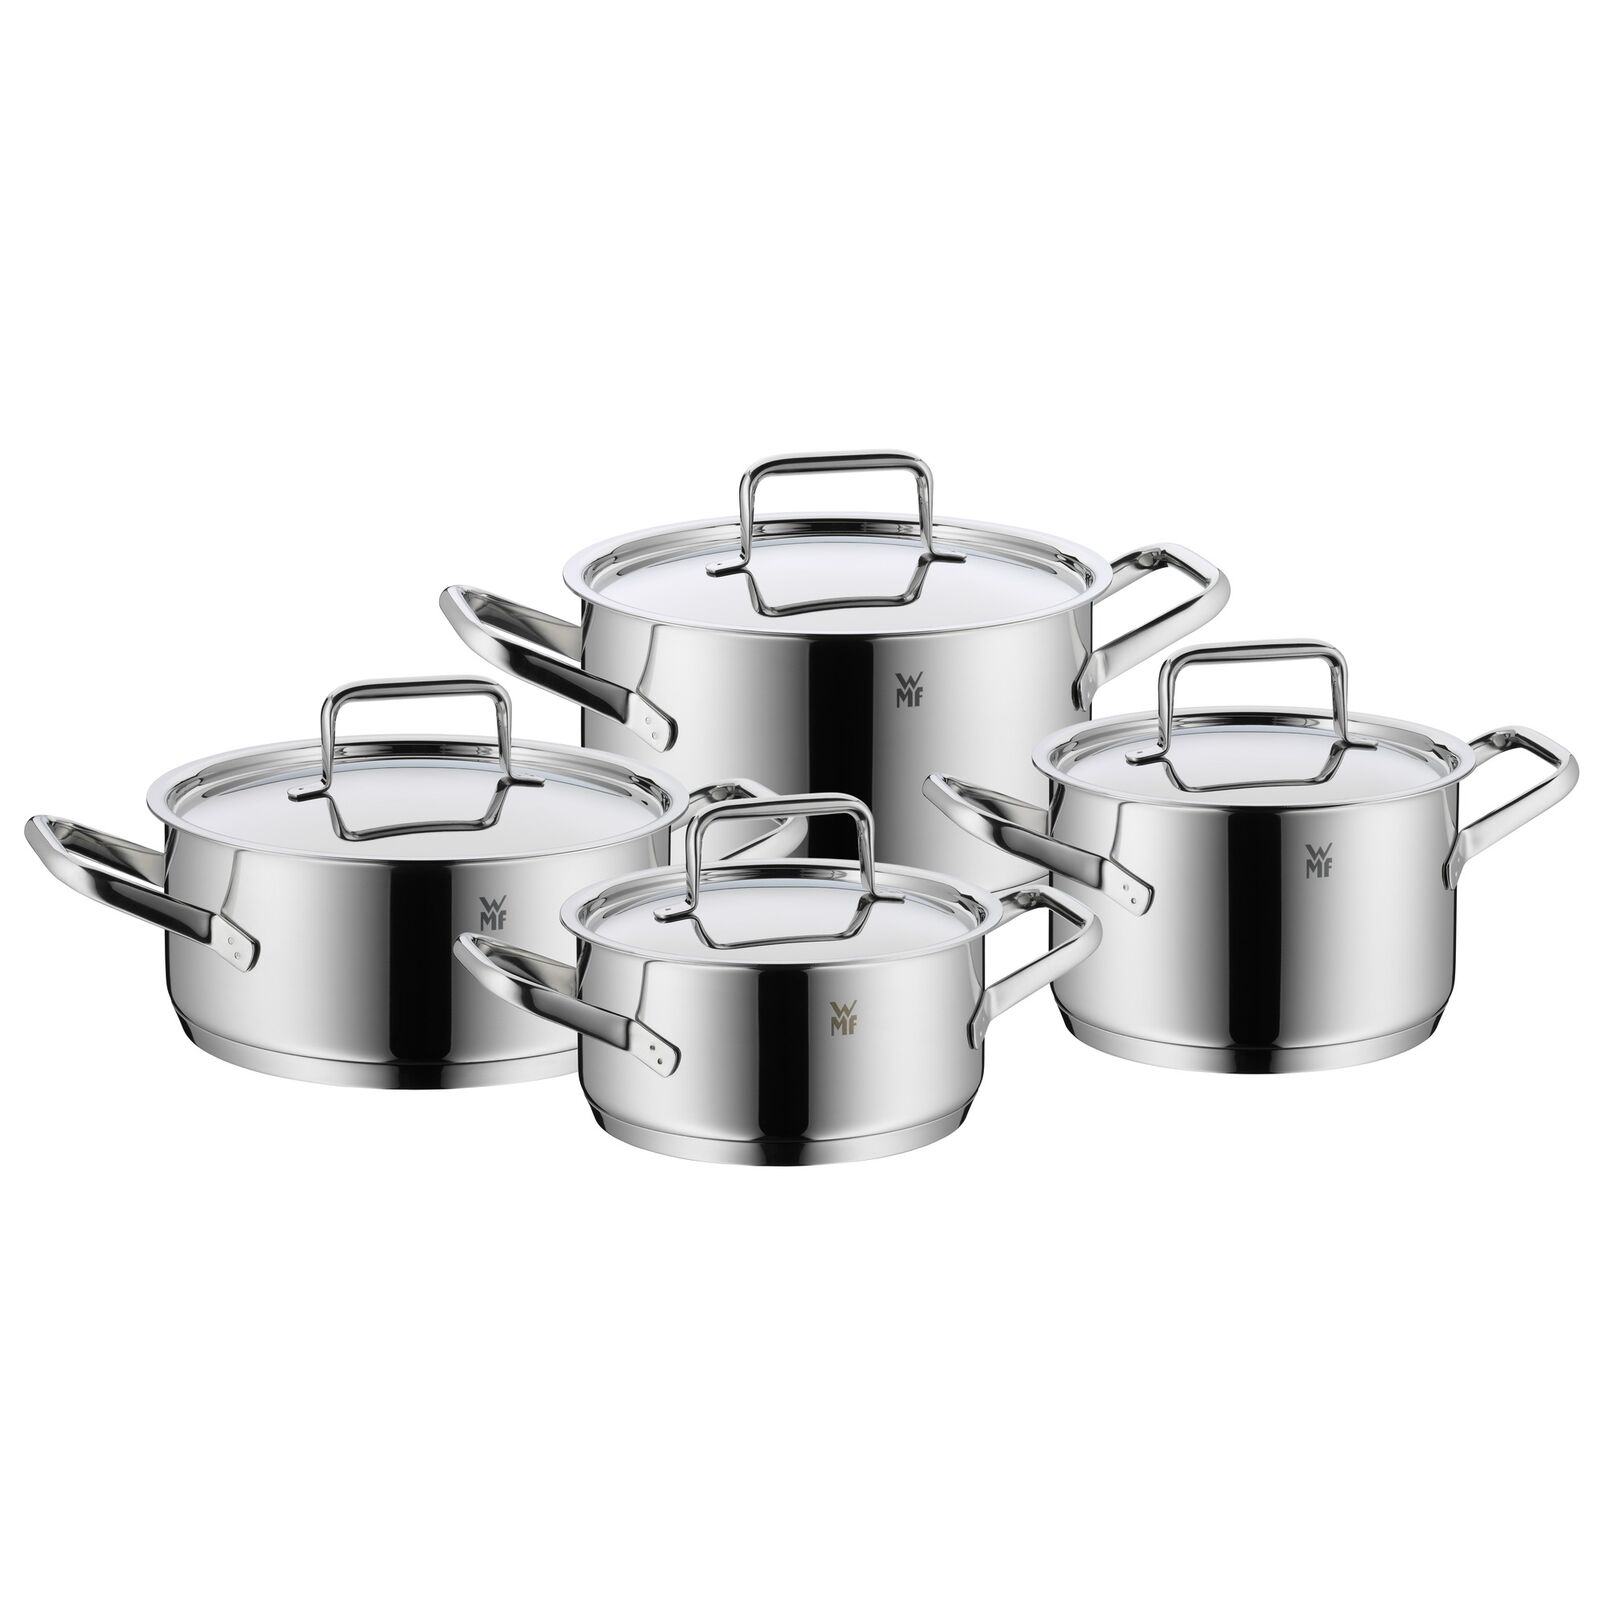 WMF Tendance Casserole-Set 4 pièces made in Germany hohlgriffe couvercle en verre Cromargan Edel